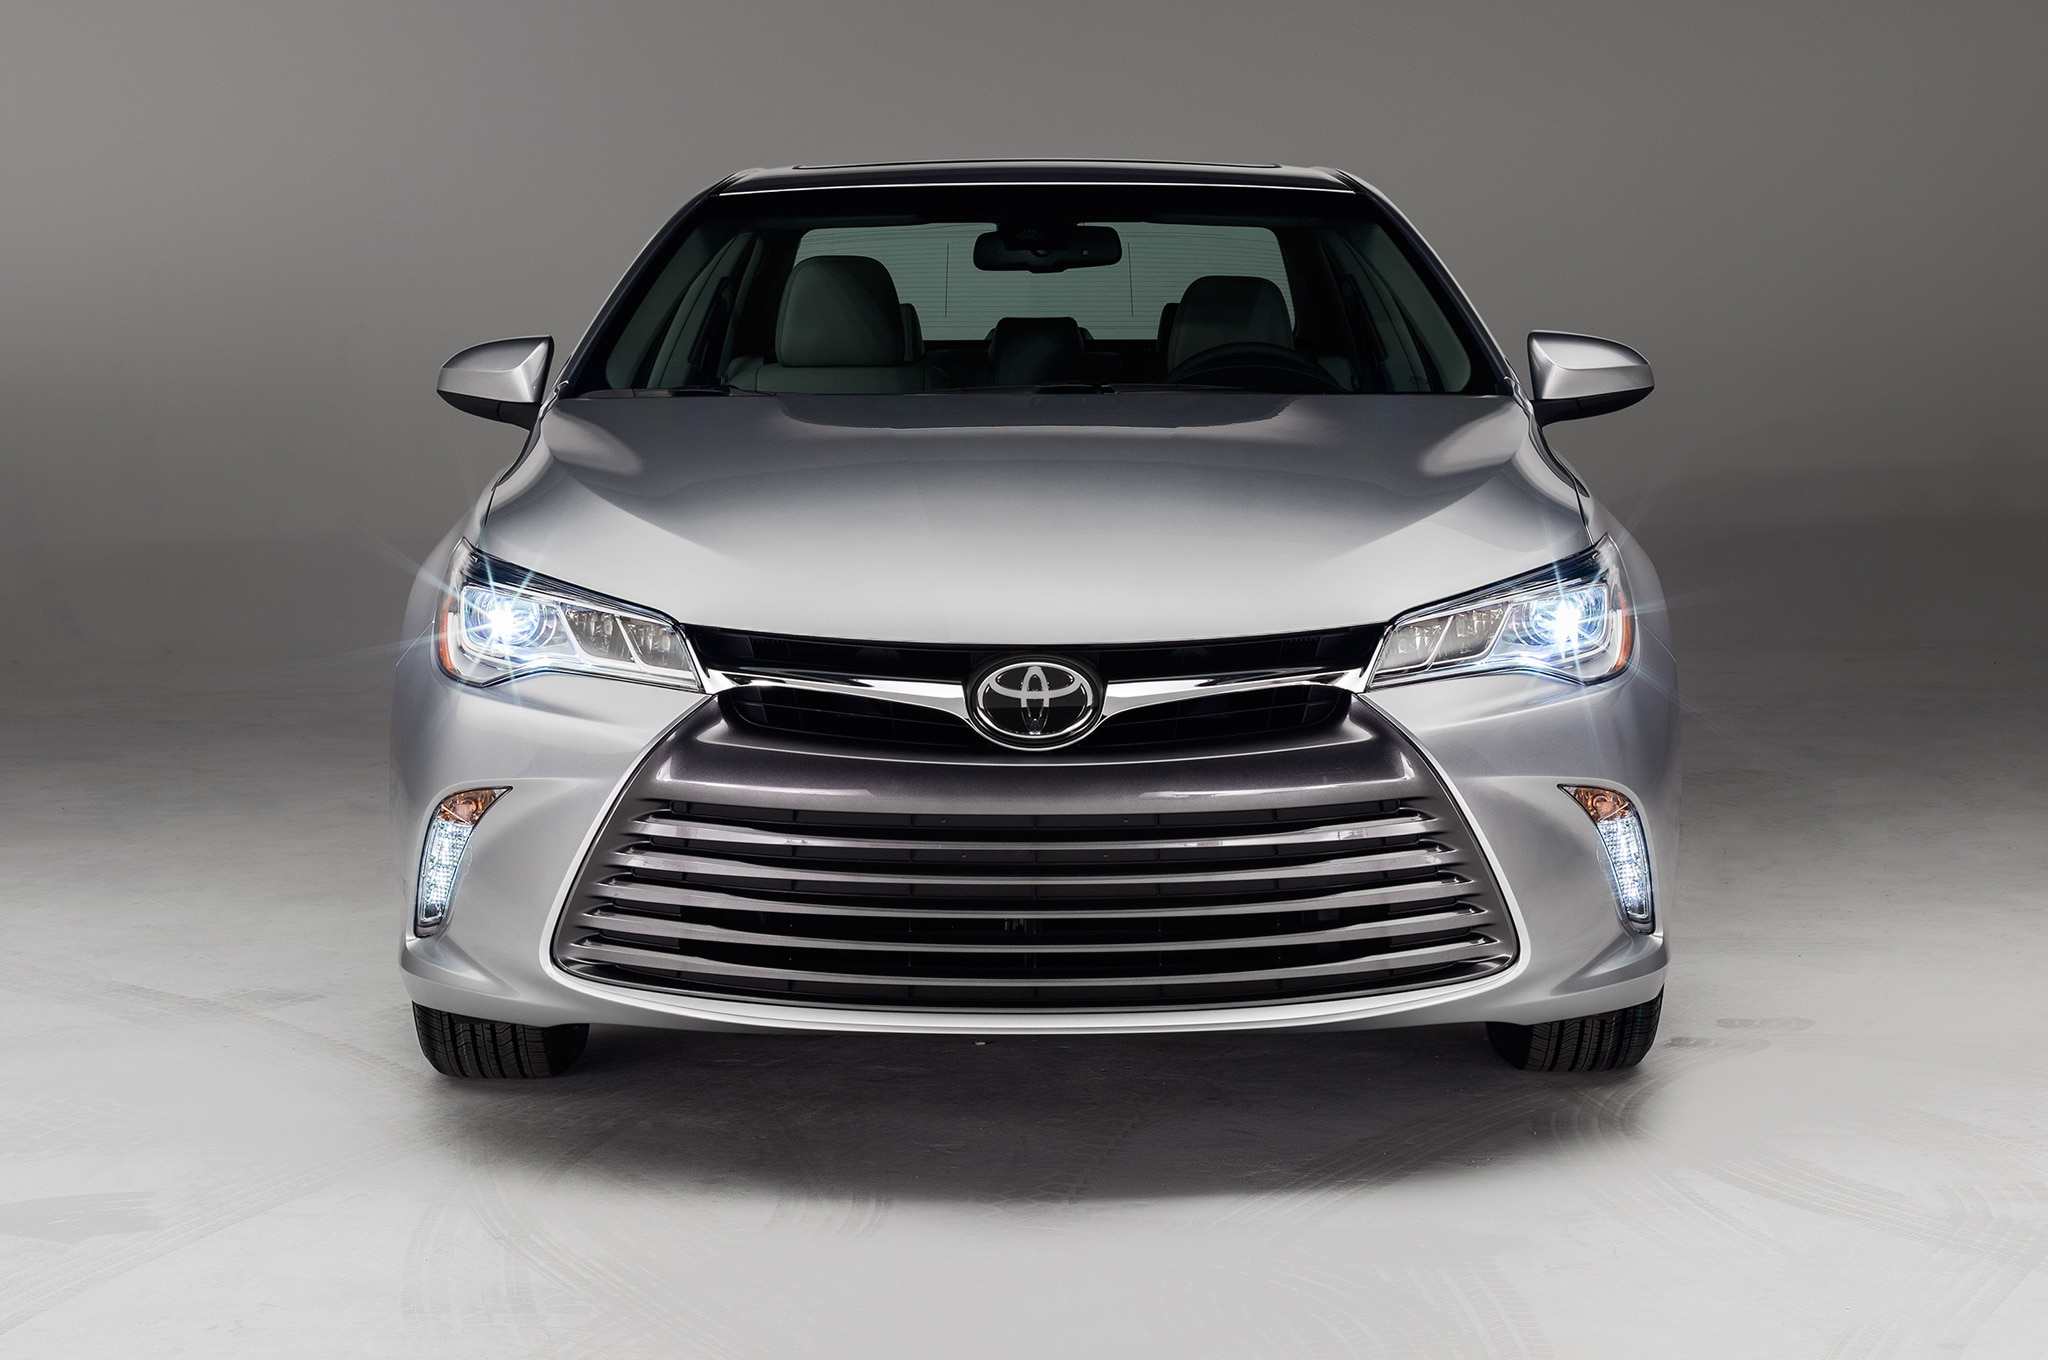 2015 Toyota Camry XLE front view lights on sing ligth wiring diagram camry 2015 conventional fire alarm 2015 Toyota Camry Spare Tire Location at bakdesigns.co